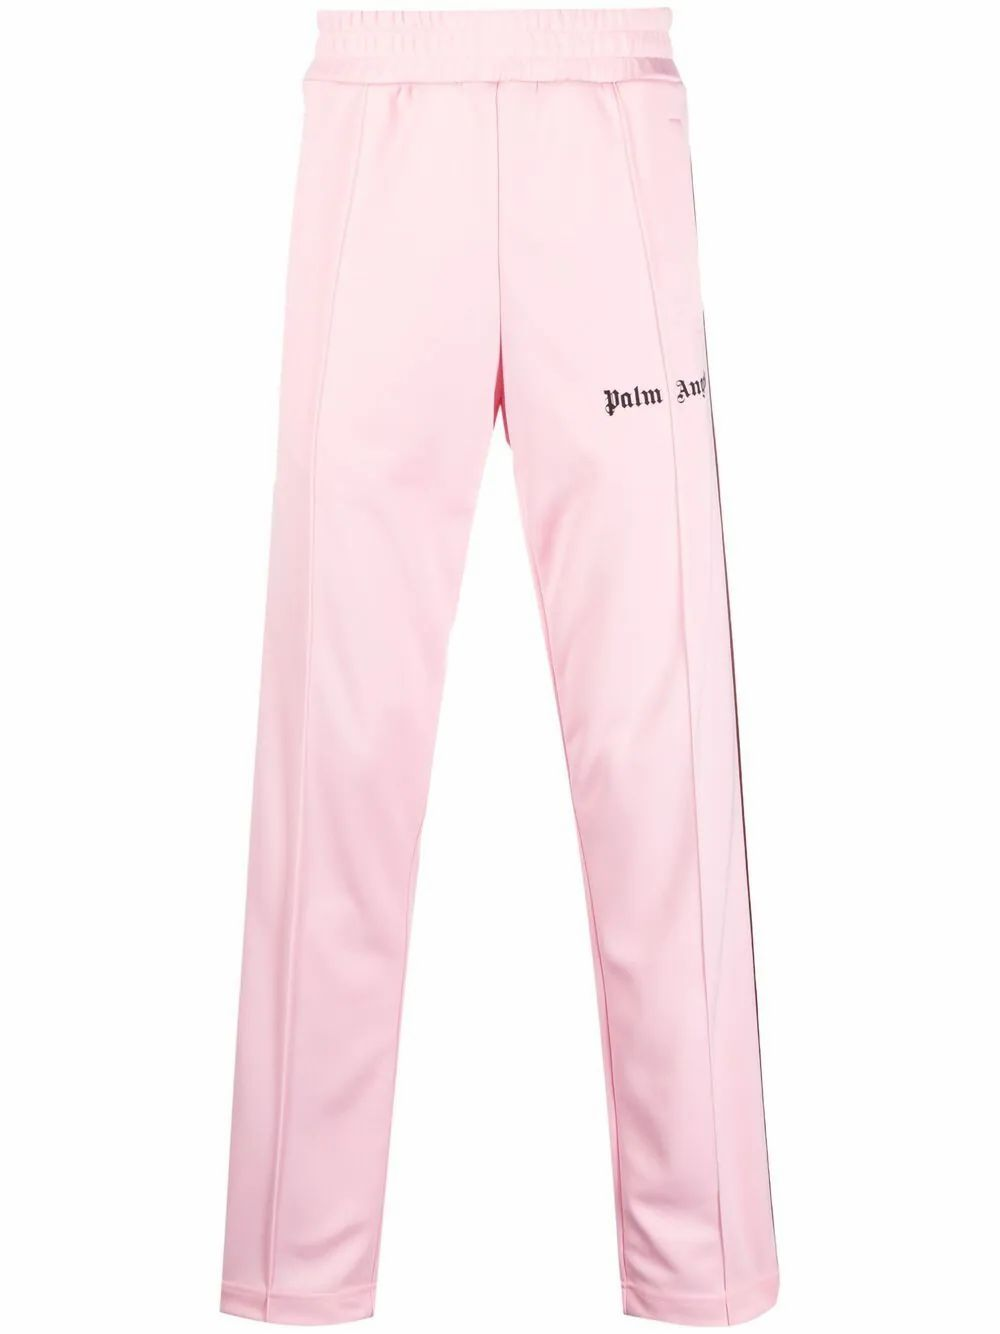 Palm Angels Track pants PALM ANGELS MEN'S PINK POLYESTER JOGGERS